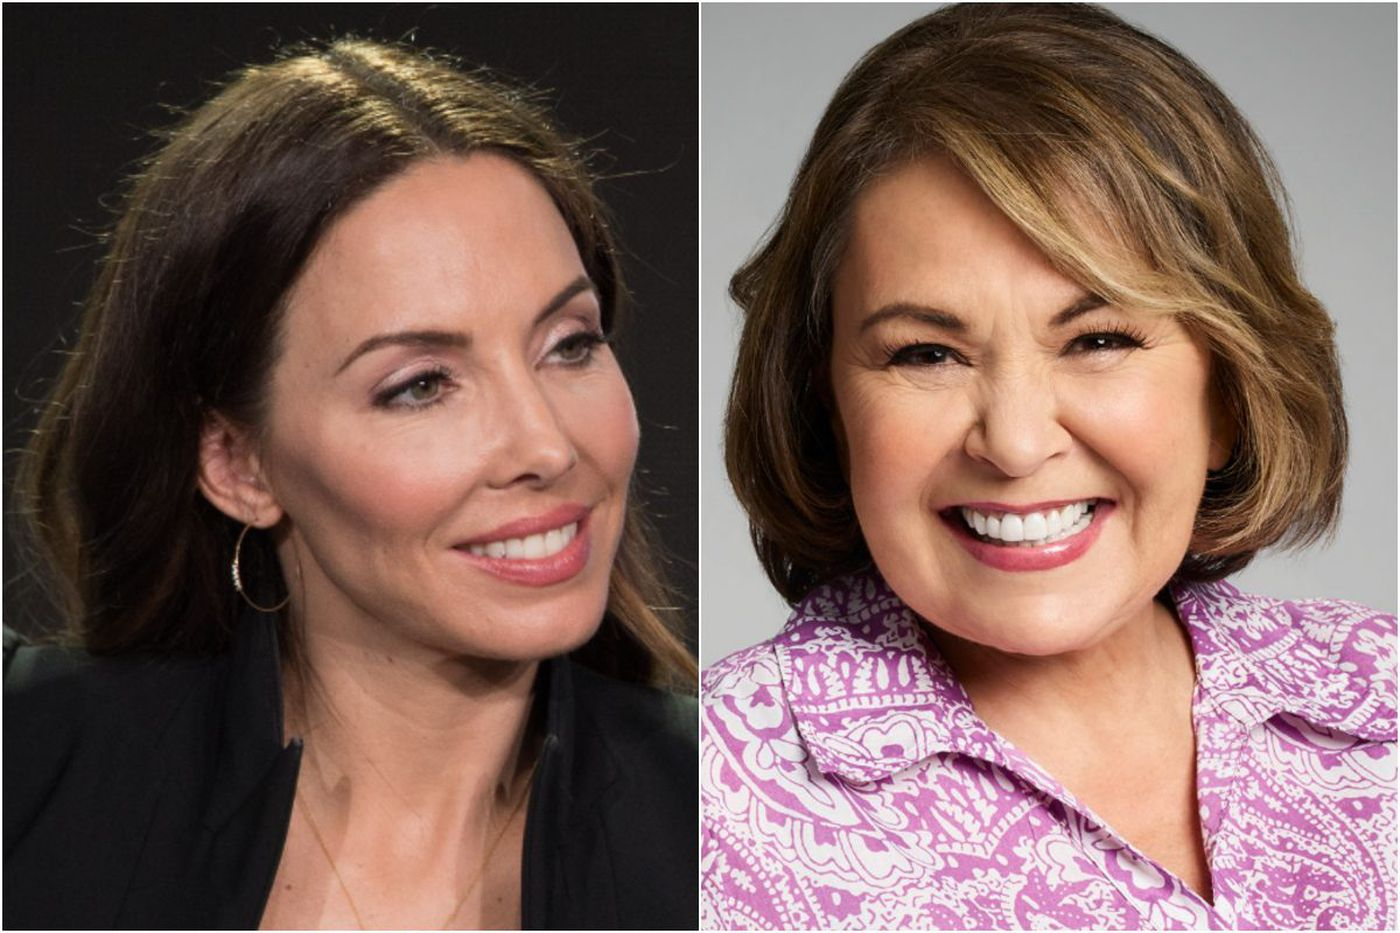 'Roseanne' & Whitney Cummings: How the Penn grad helped bring ABC's long-ago hit back to TV